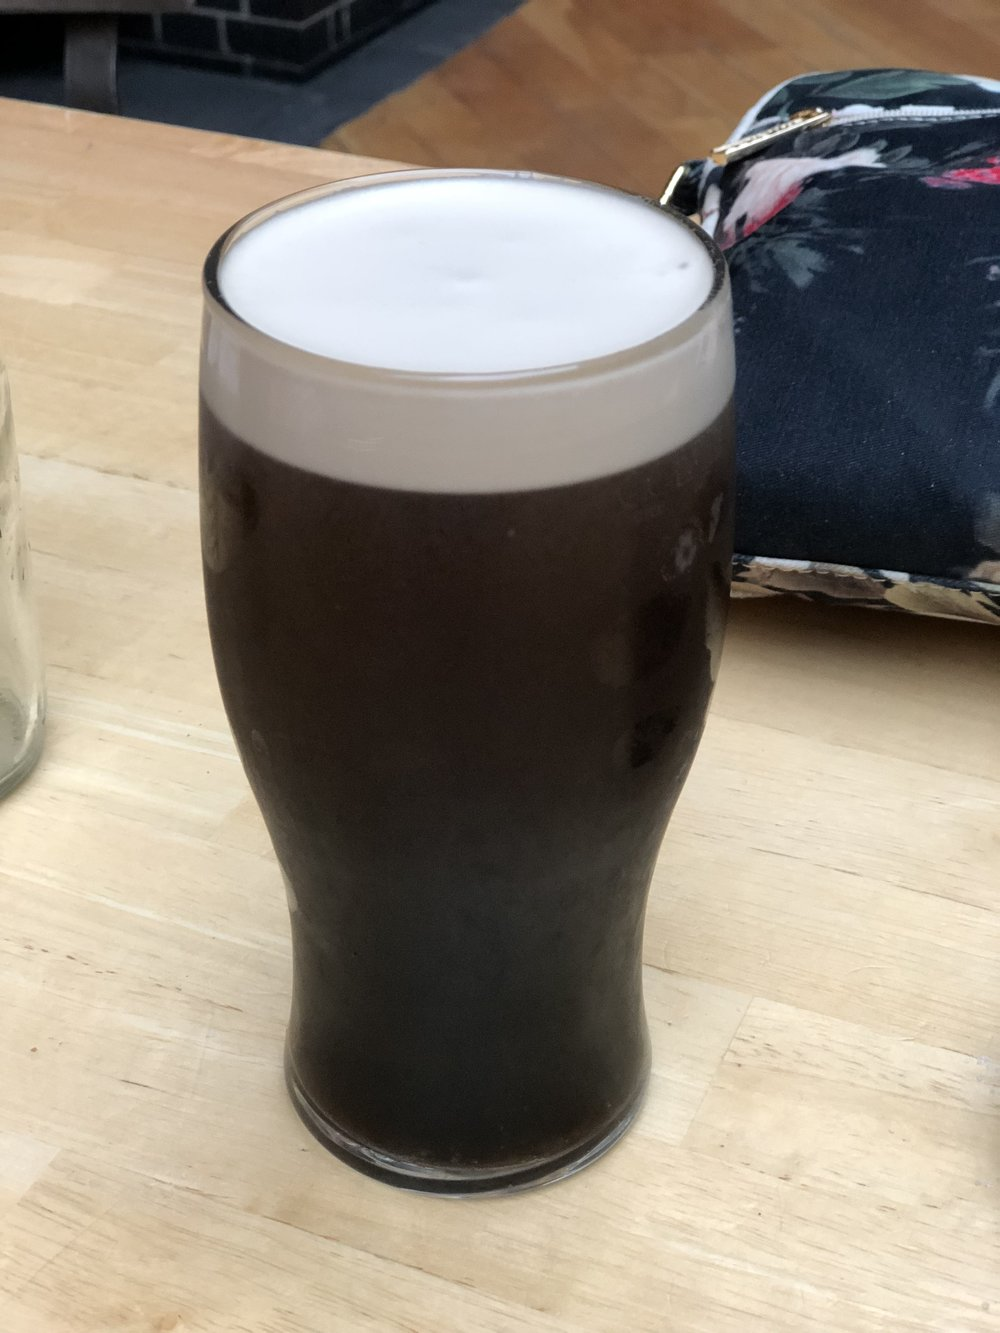 I will admit I am not usually a huge fan of Guinness. It's my Irish sin, I know. I LOVED this pint. It tasted great paired with dinner.